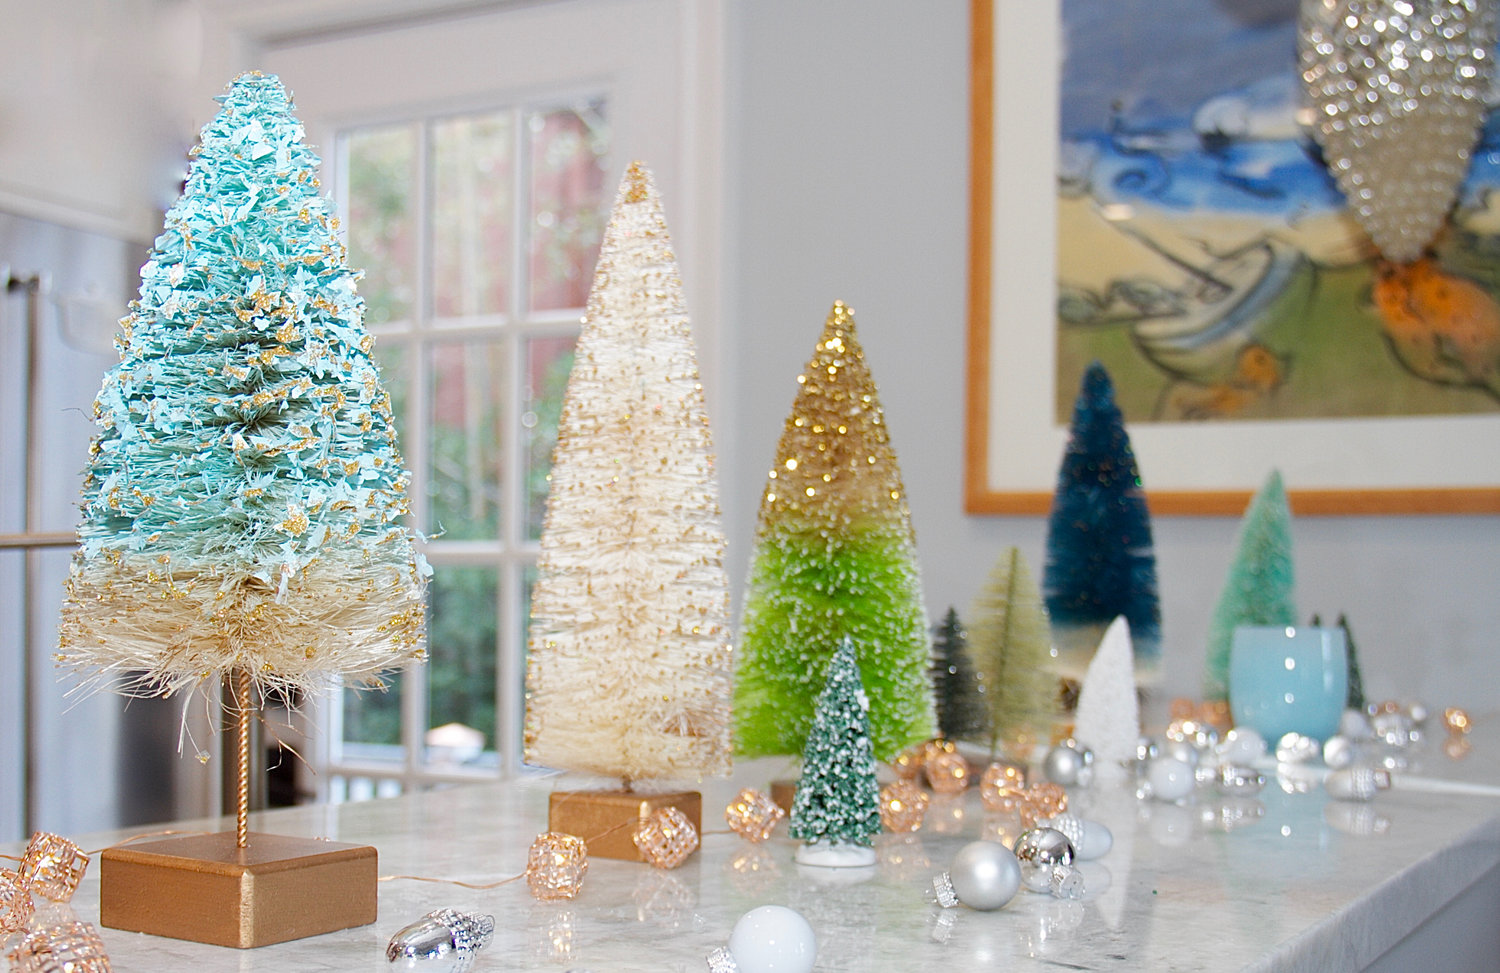 A miniature forest of gold Christmas trees added a touch of seasonal sparkle to Jane McGilloway's modern kitchen.